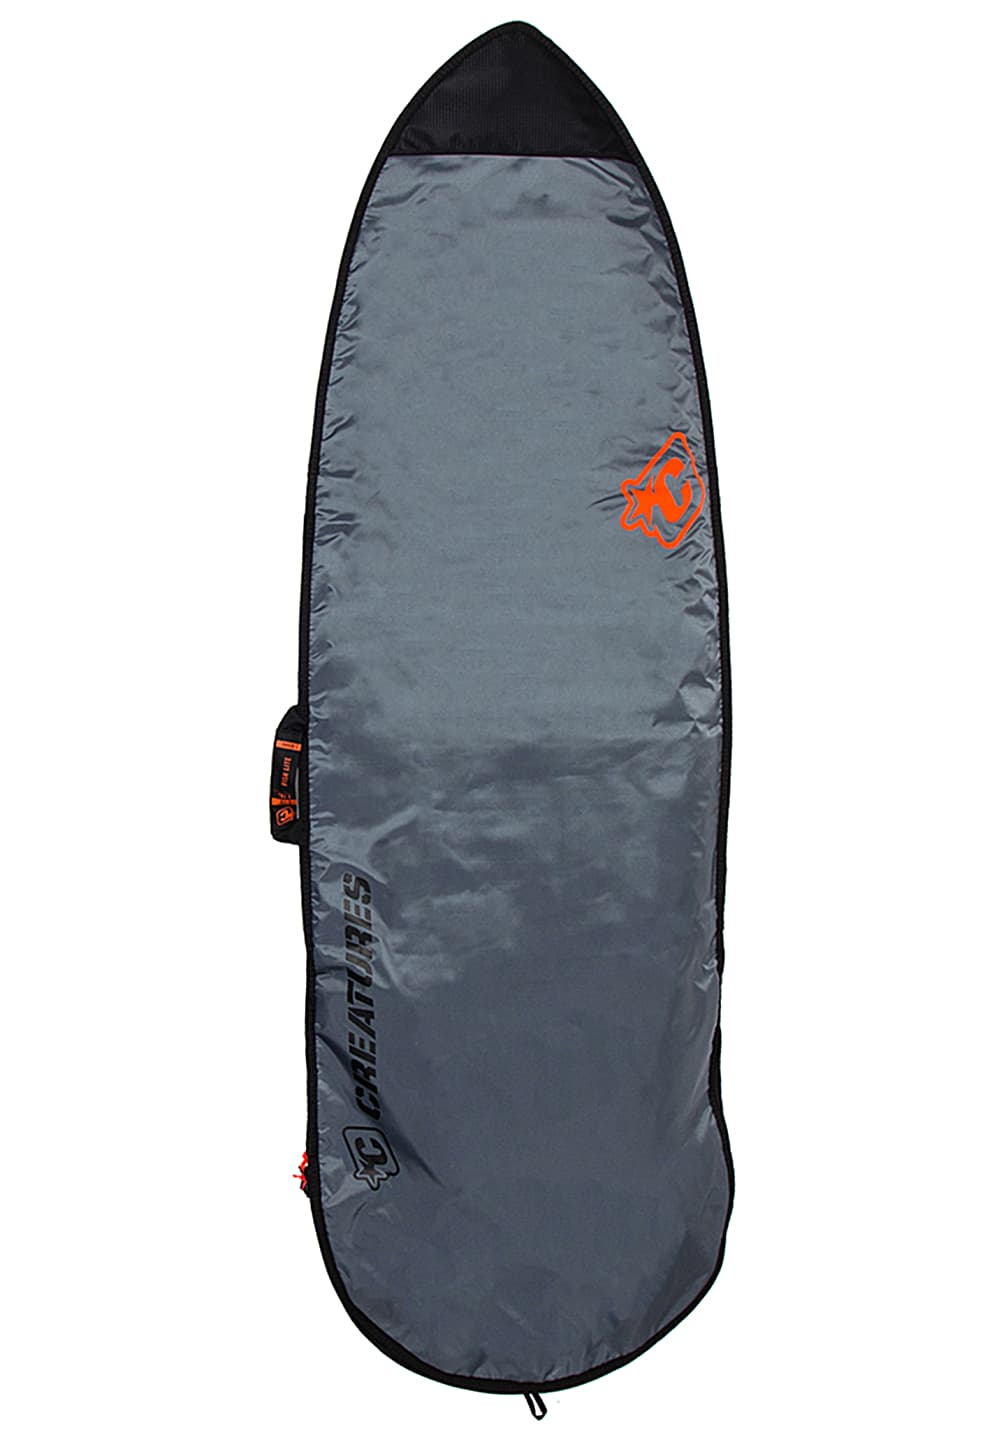 Creatures of Leisure Fish Lite Cover 6´7´´ Surfboardtasche - Grau